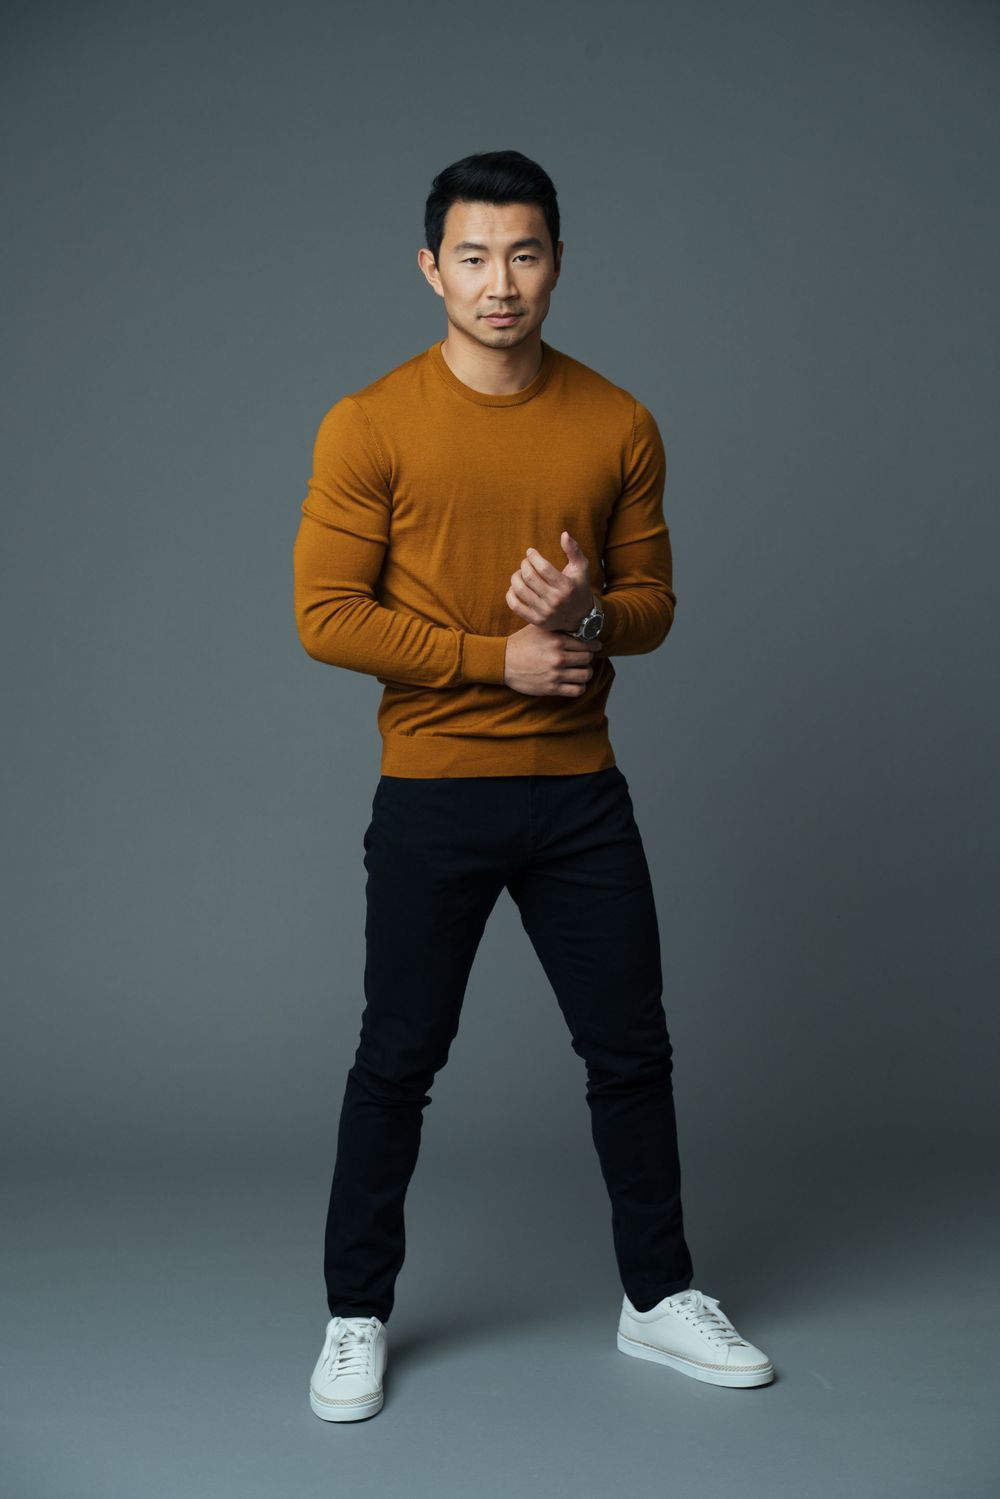 Simu Liu for Character Media shot by Bill Chen